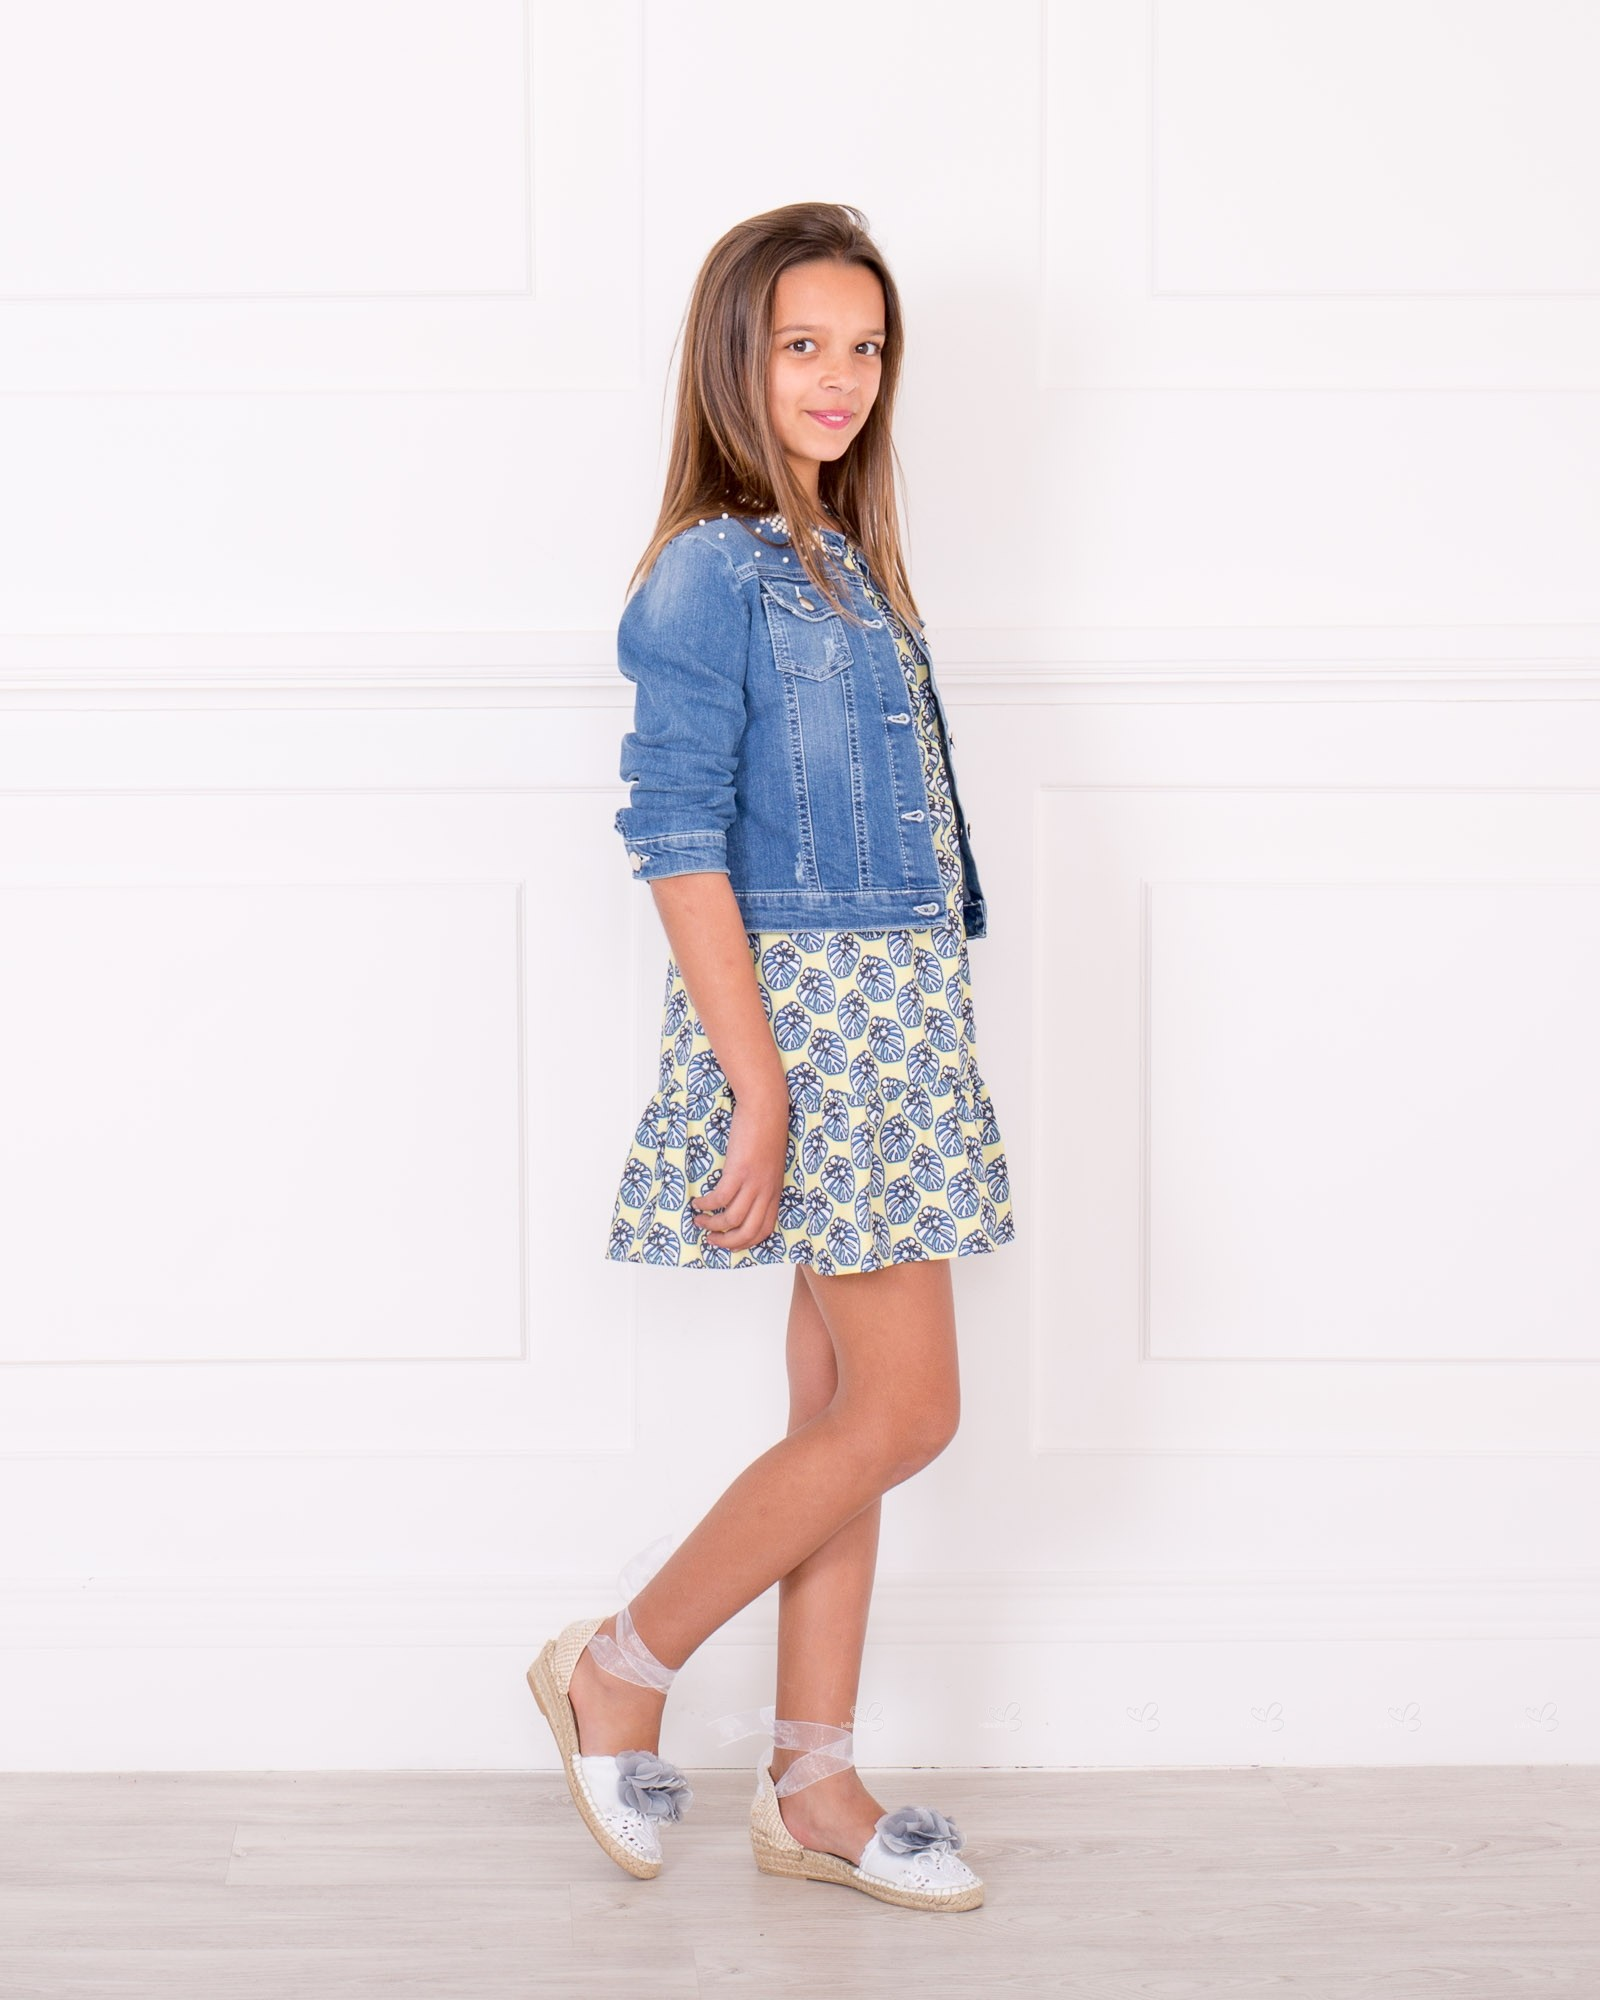 68ddf7a74157 ... Girls Yellow   Blue OFF the Shoulder Dress   Blue Pearl Denim Jacket  Outfit ...